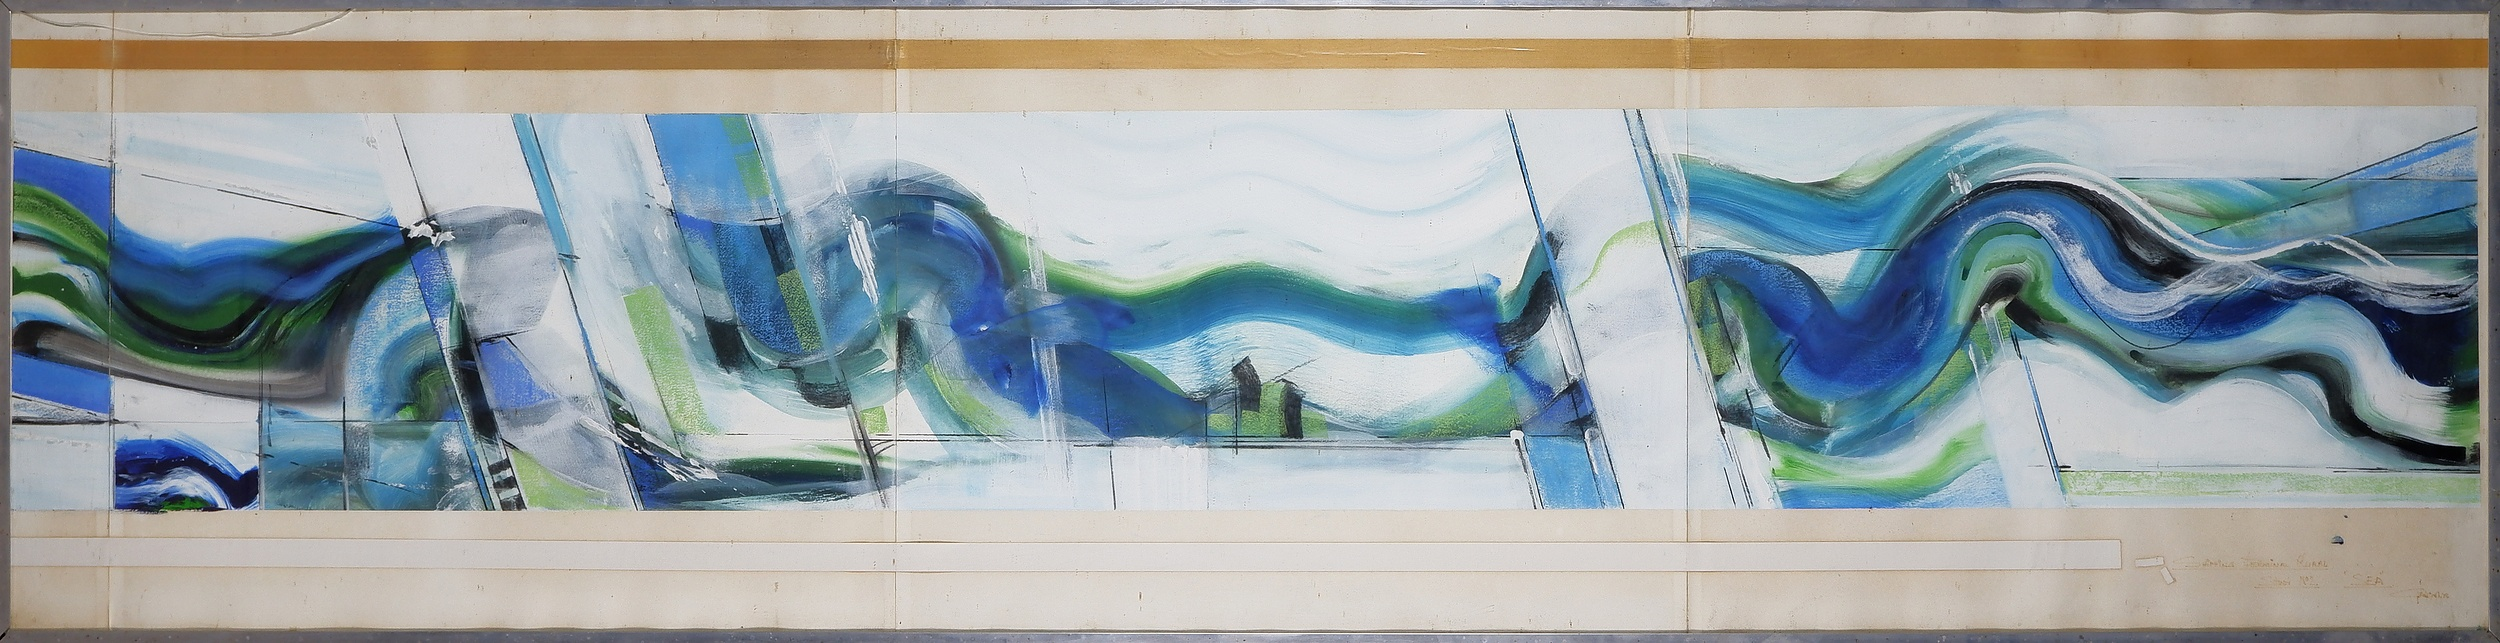 'Thomas Gleghorn (born 1925), Blue and Green Wave, Mixed Media on Paper'